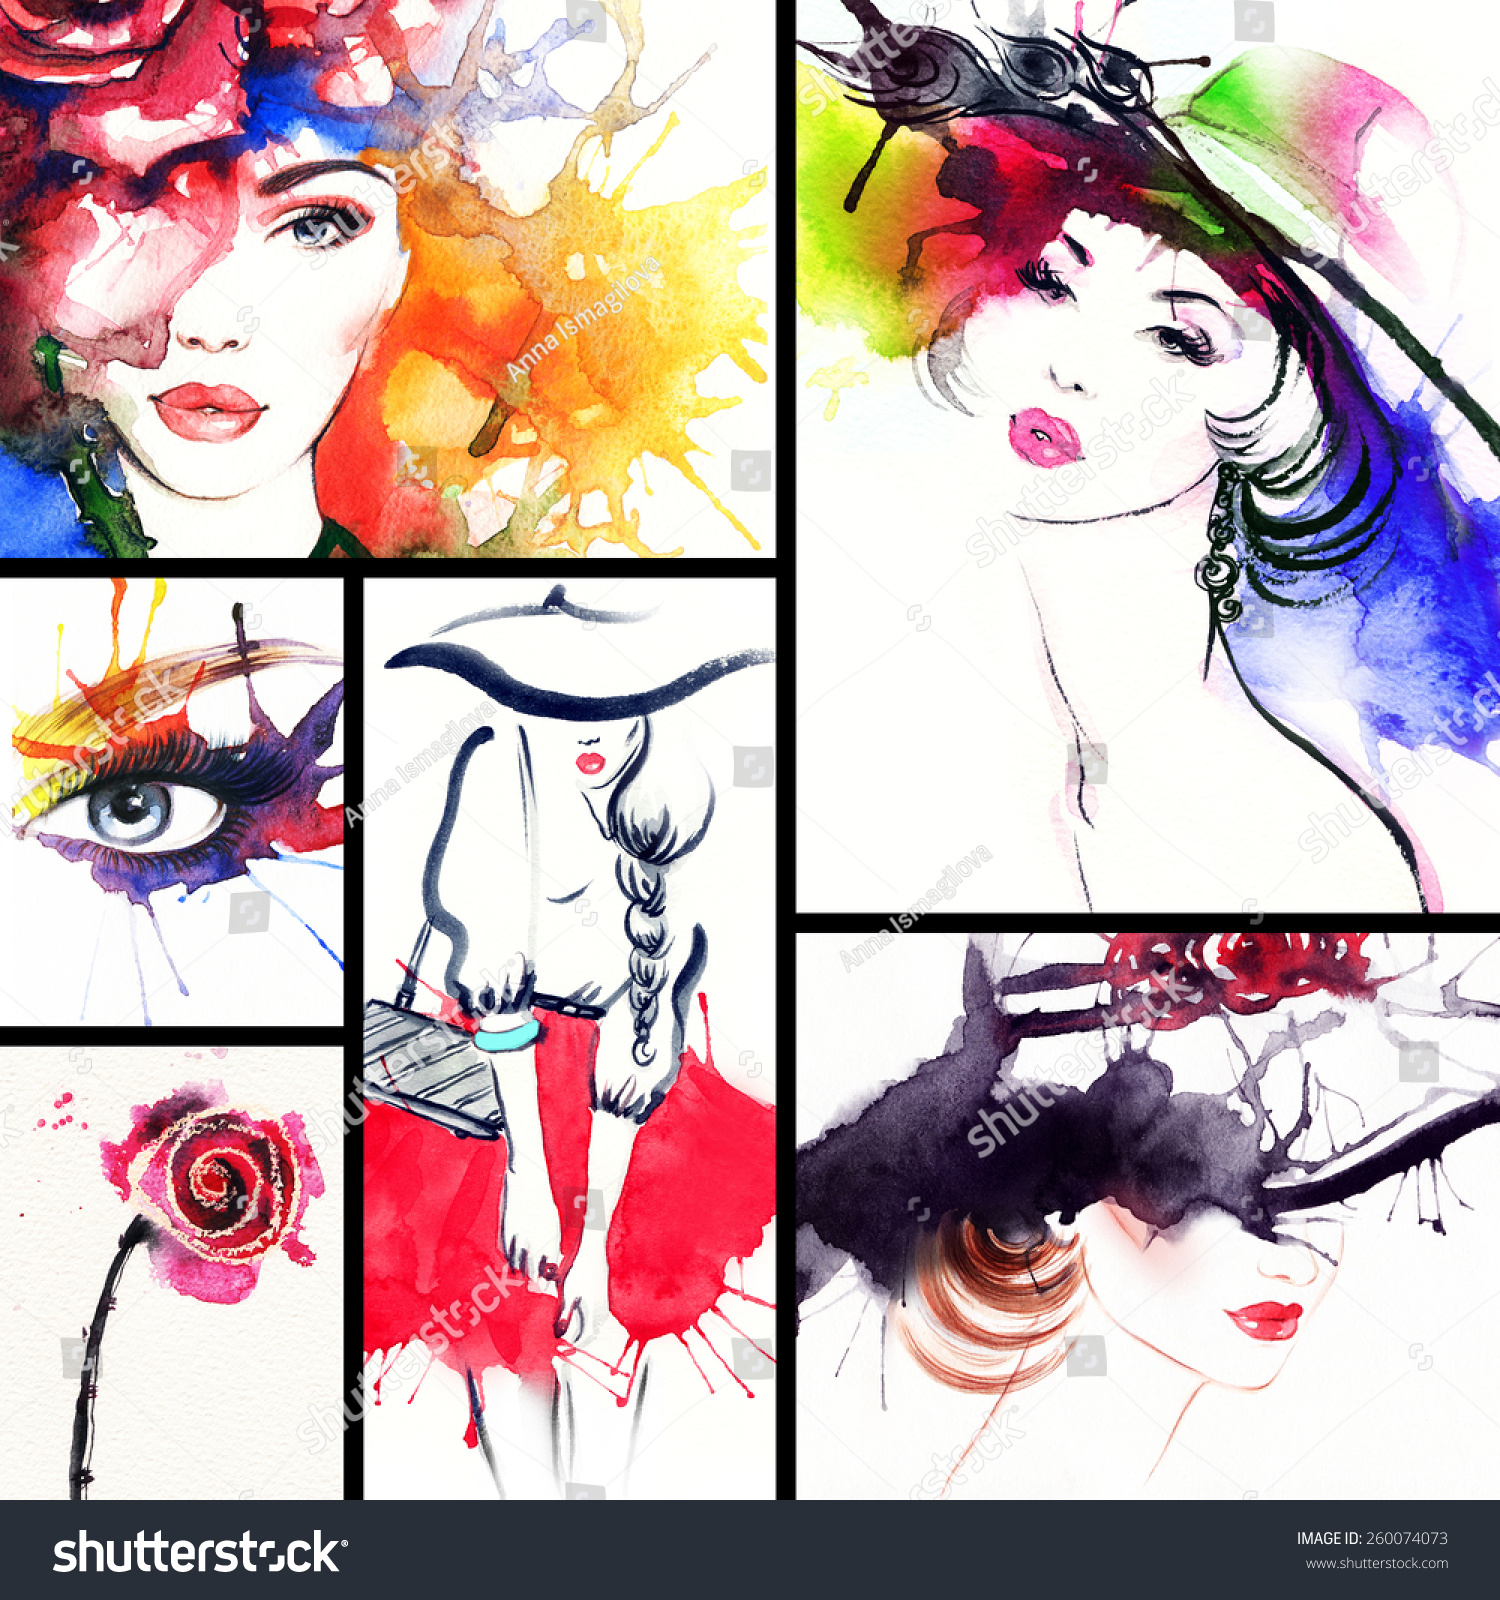 to wear - Collage Fashion backgrounds pictures video